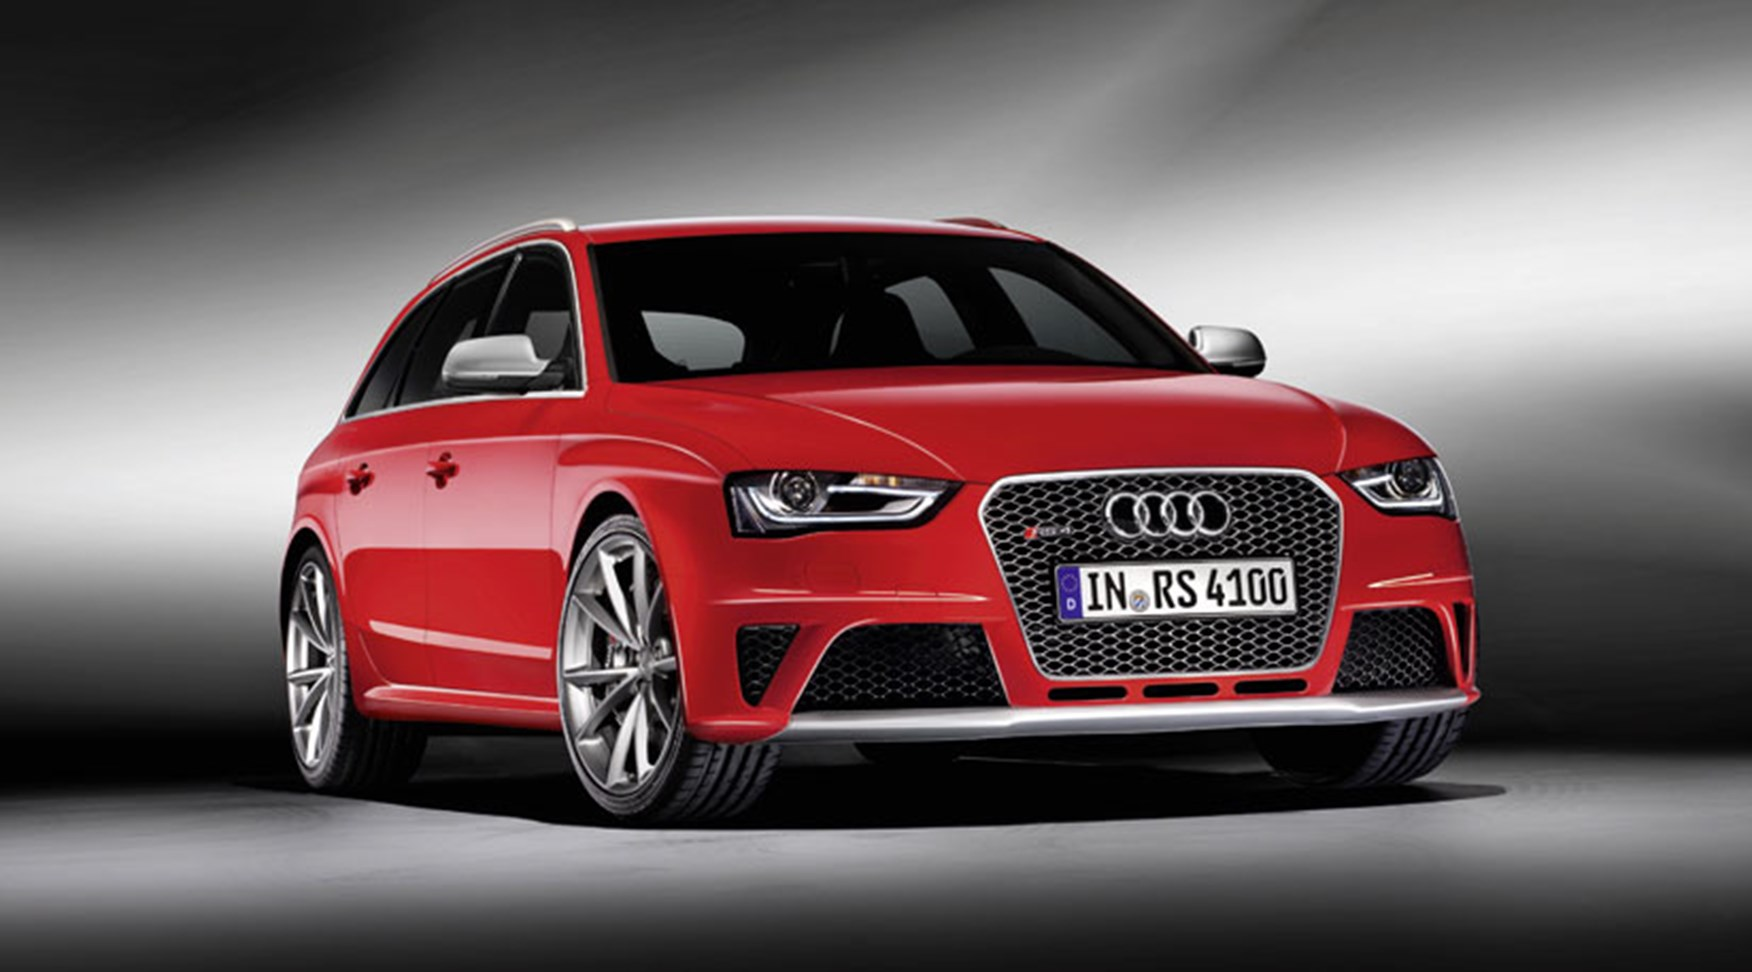 Audi RS4 Avant (2012) first official pictures | CAR Magazine